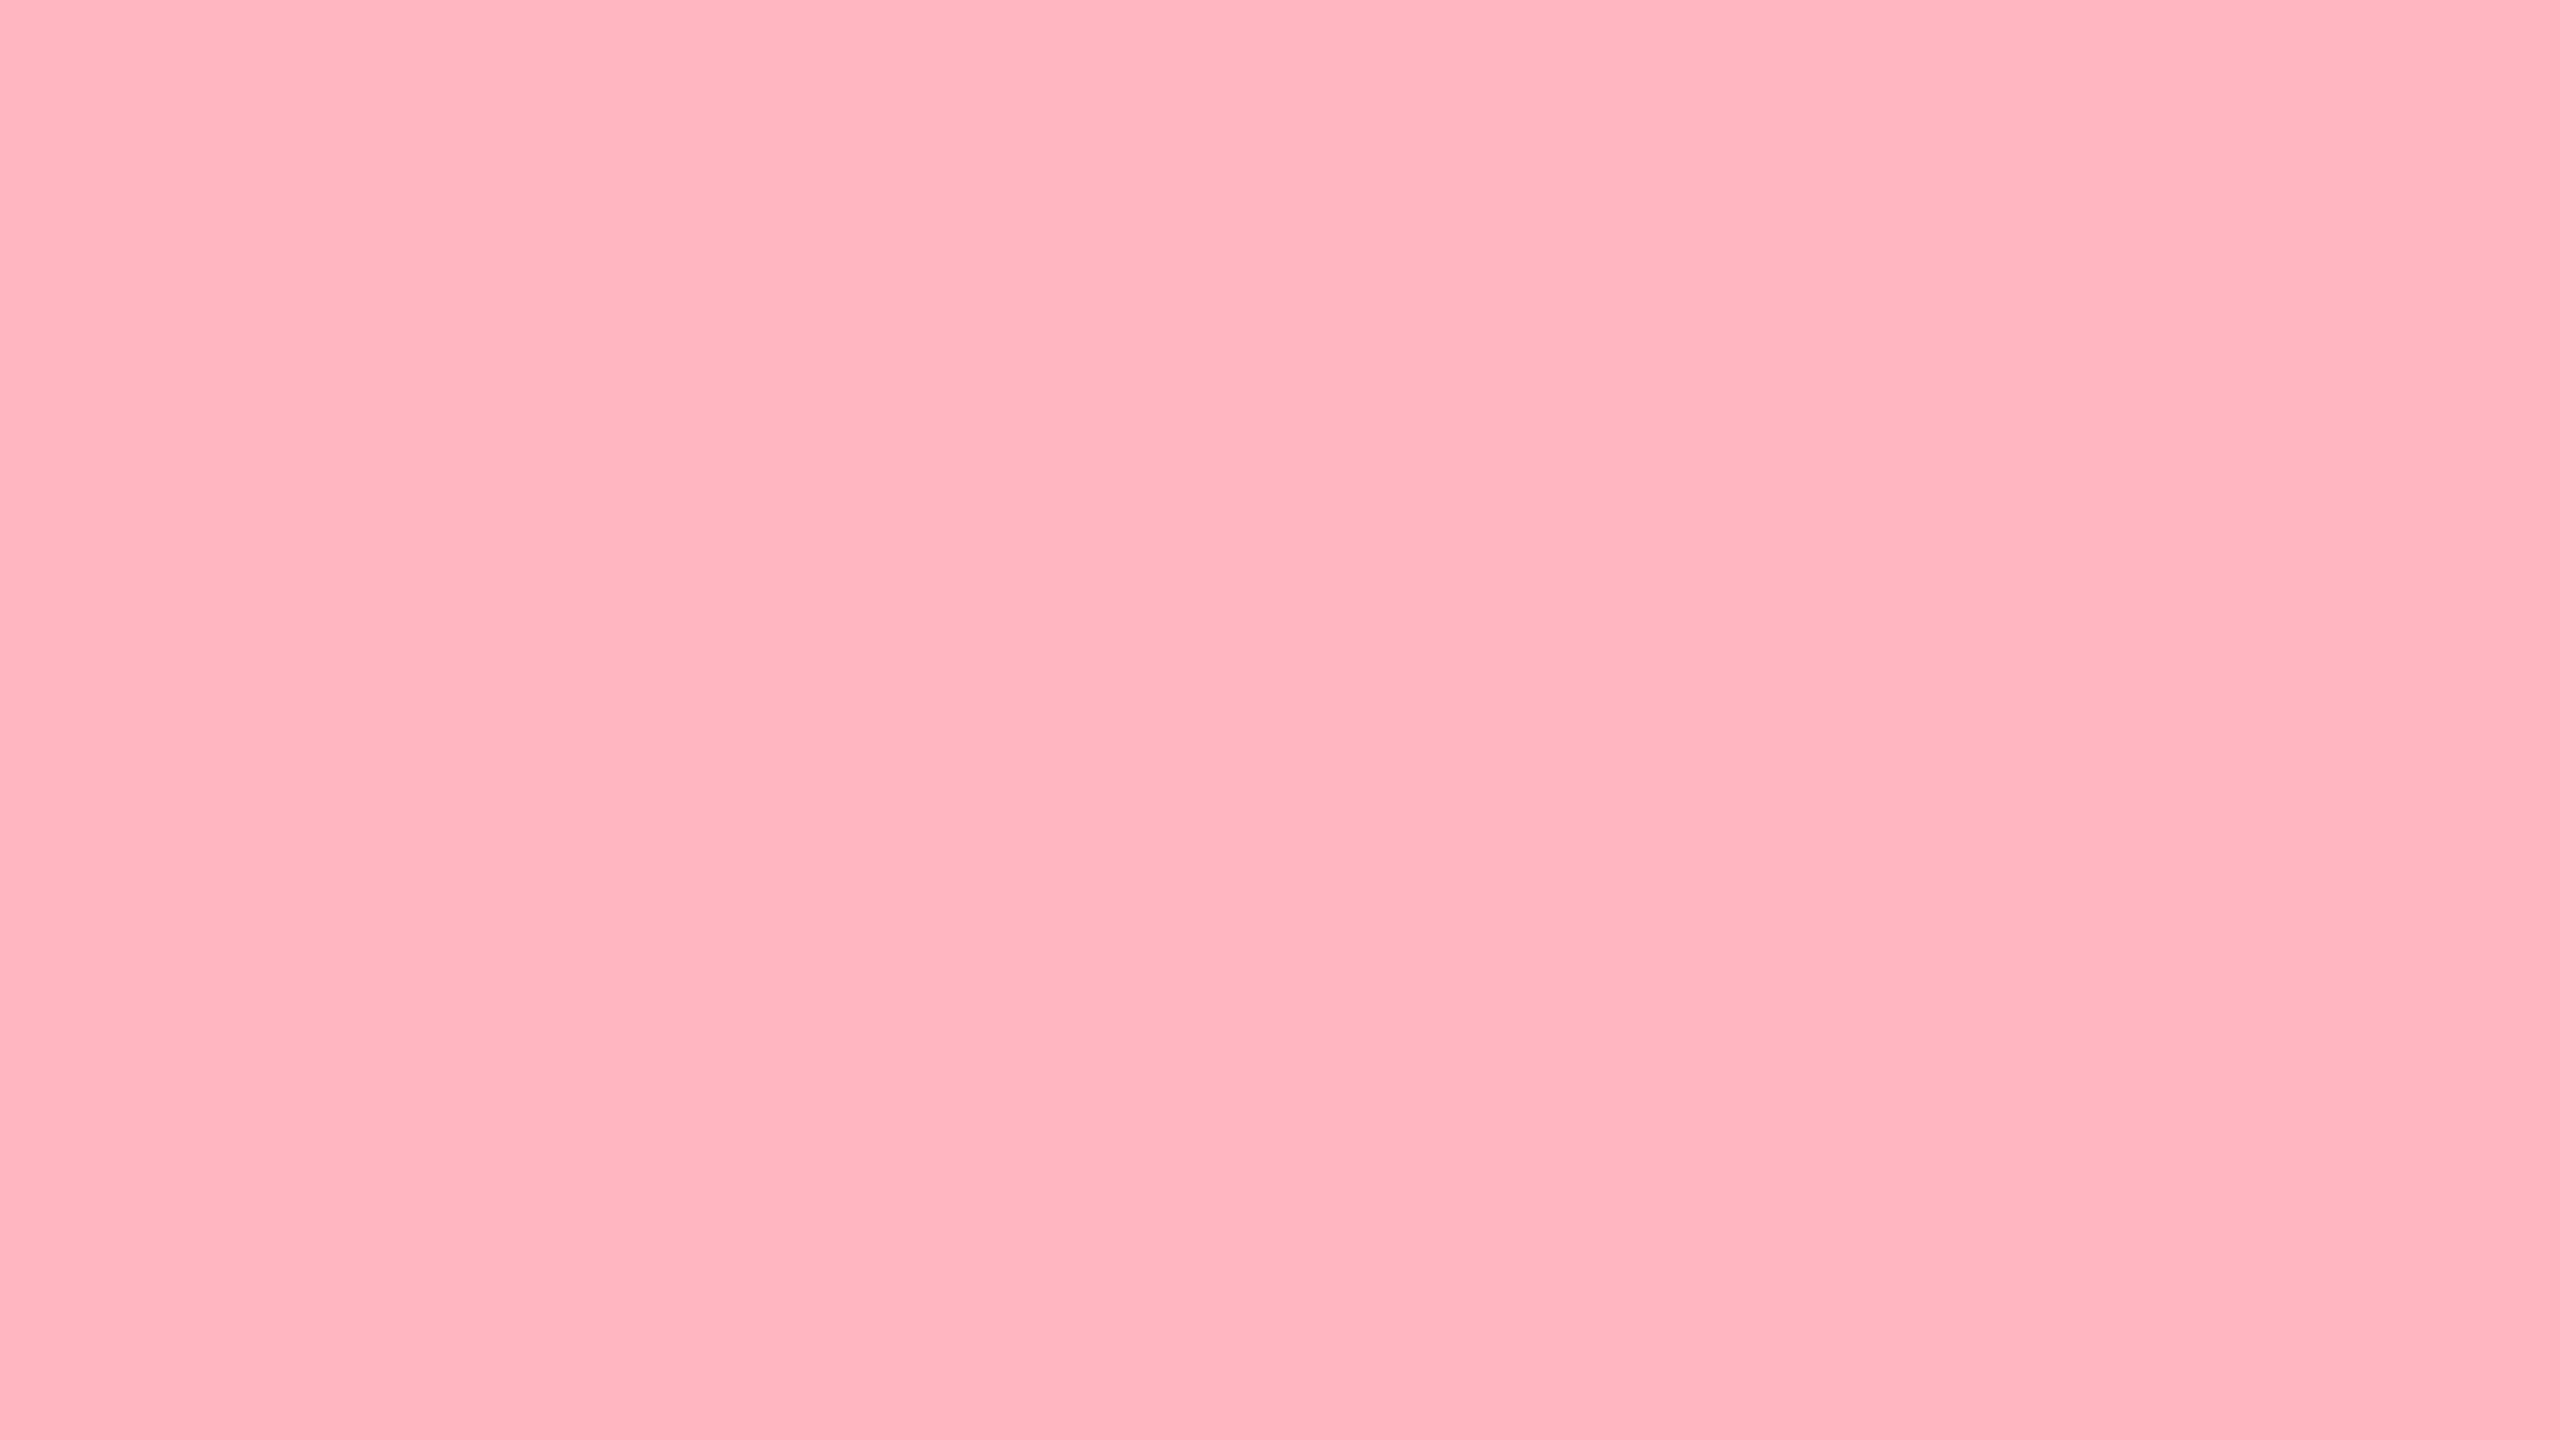 pale pink color background - photo #37